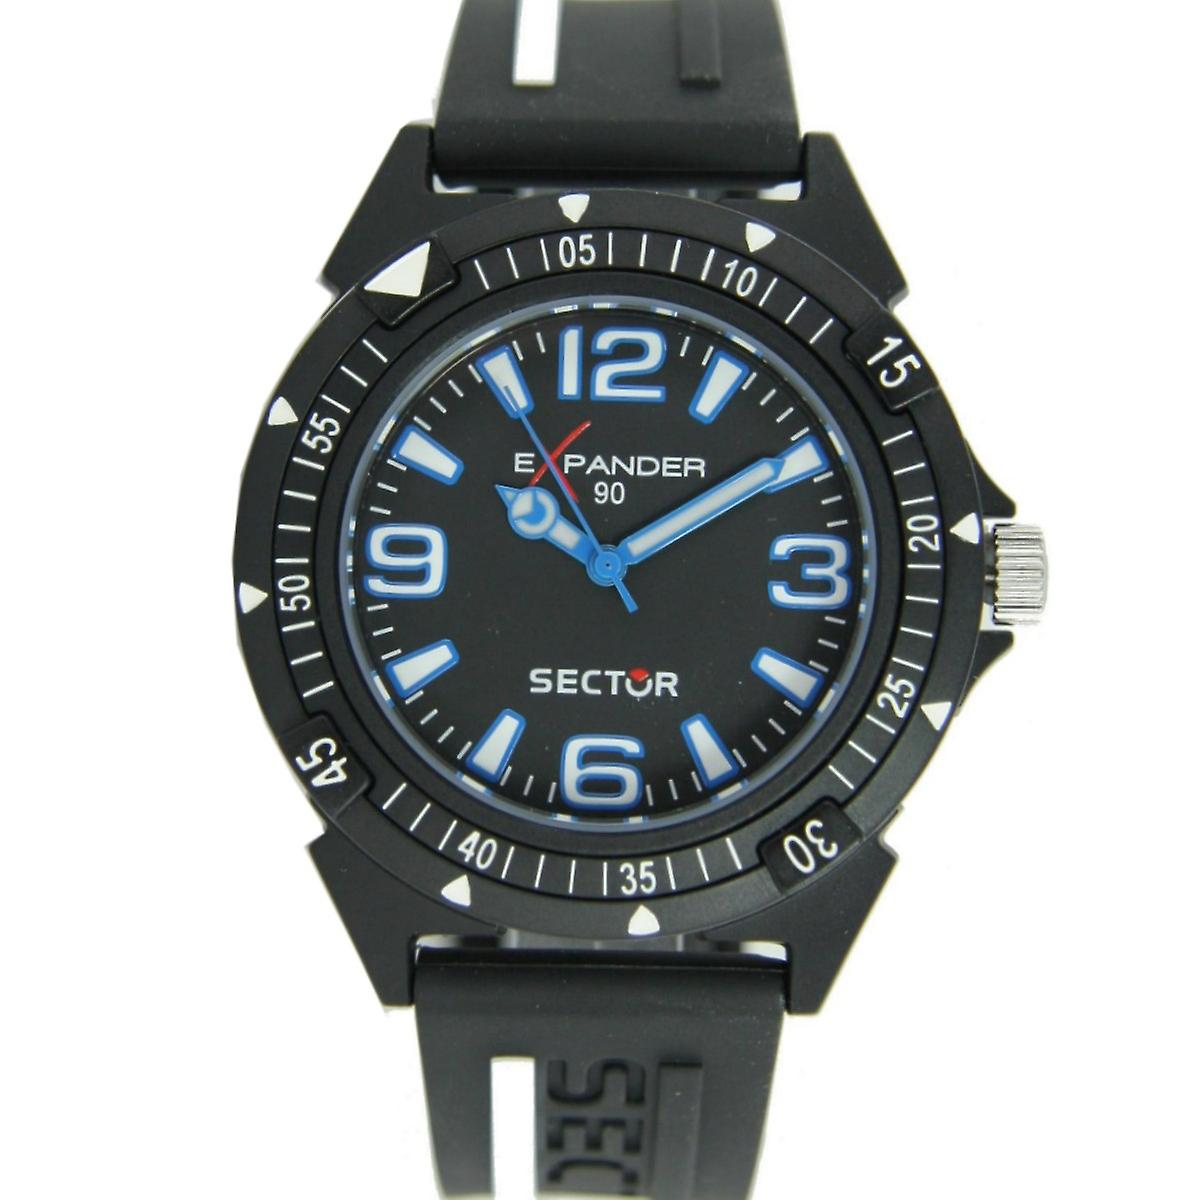 Sector men's watch wristwatch Expander 90 - R3251197002